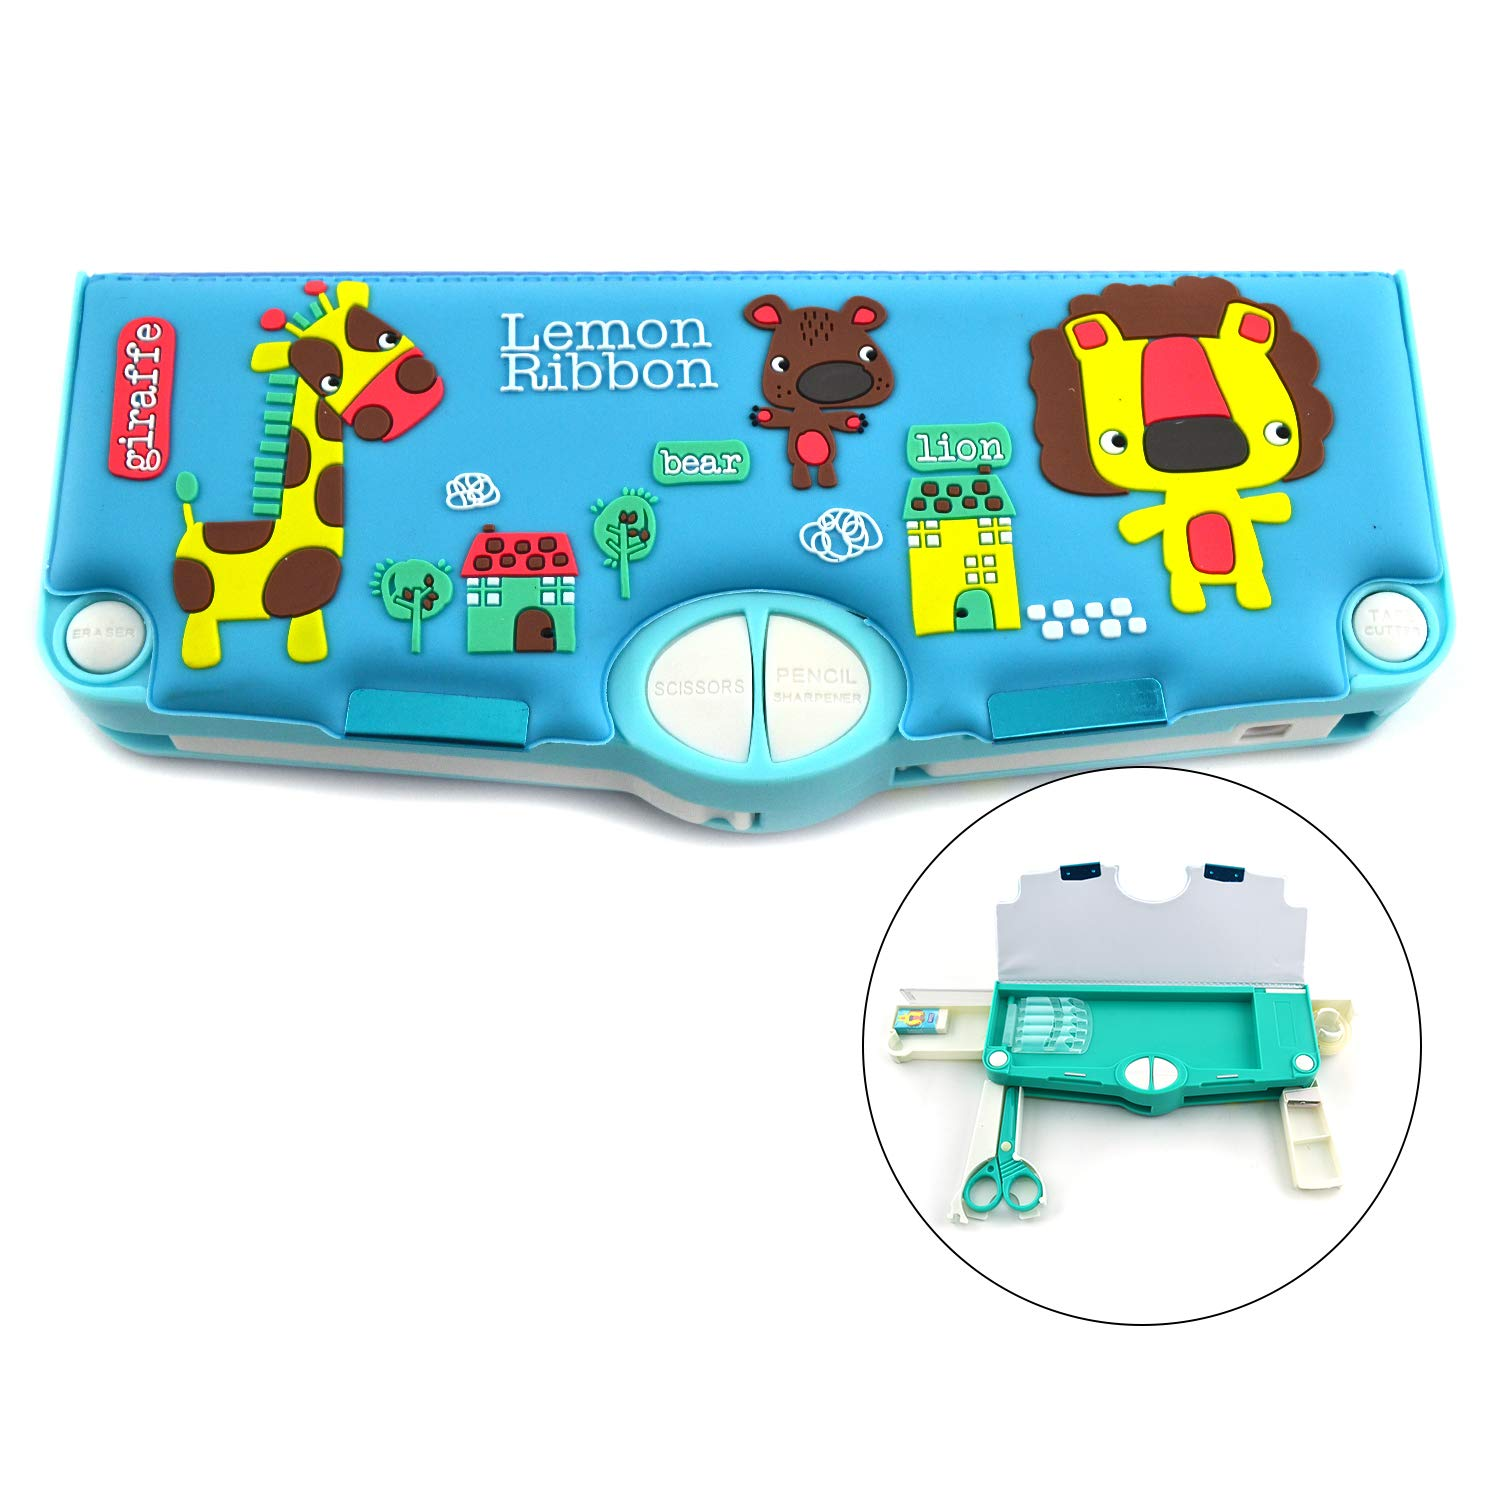 Lemon Ribbon 3D Muli-function Pencil Box:Single sides magnetic Lid With Surface Colored Animal Art And Hardtop Outdoor Waterproof Desktop Rugged Bule Toy Storage Case For kids